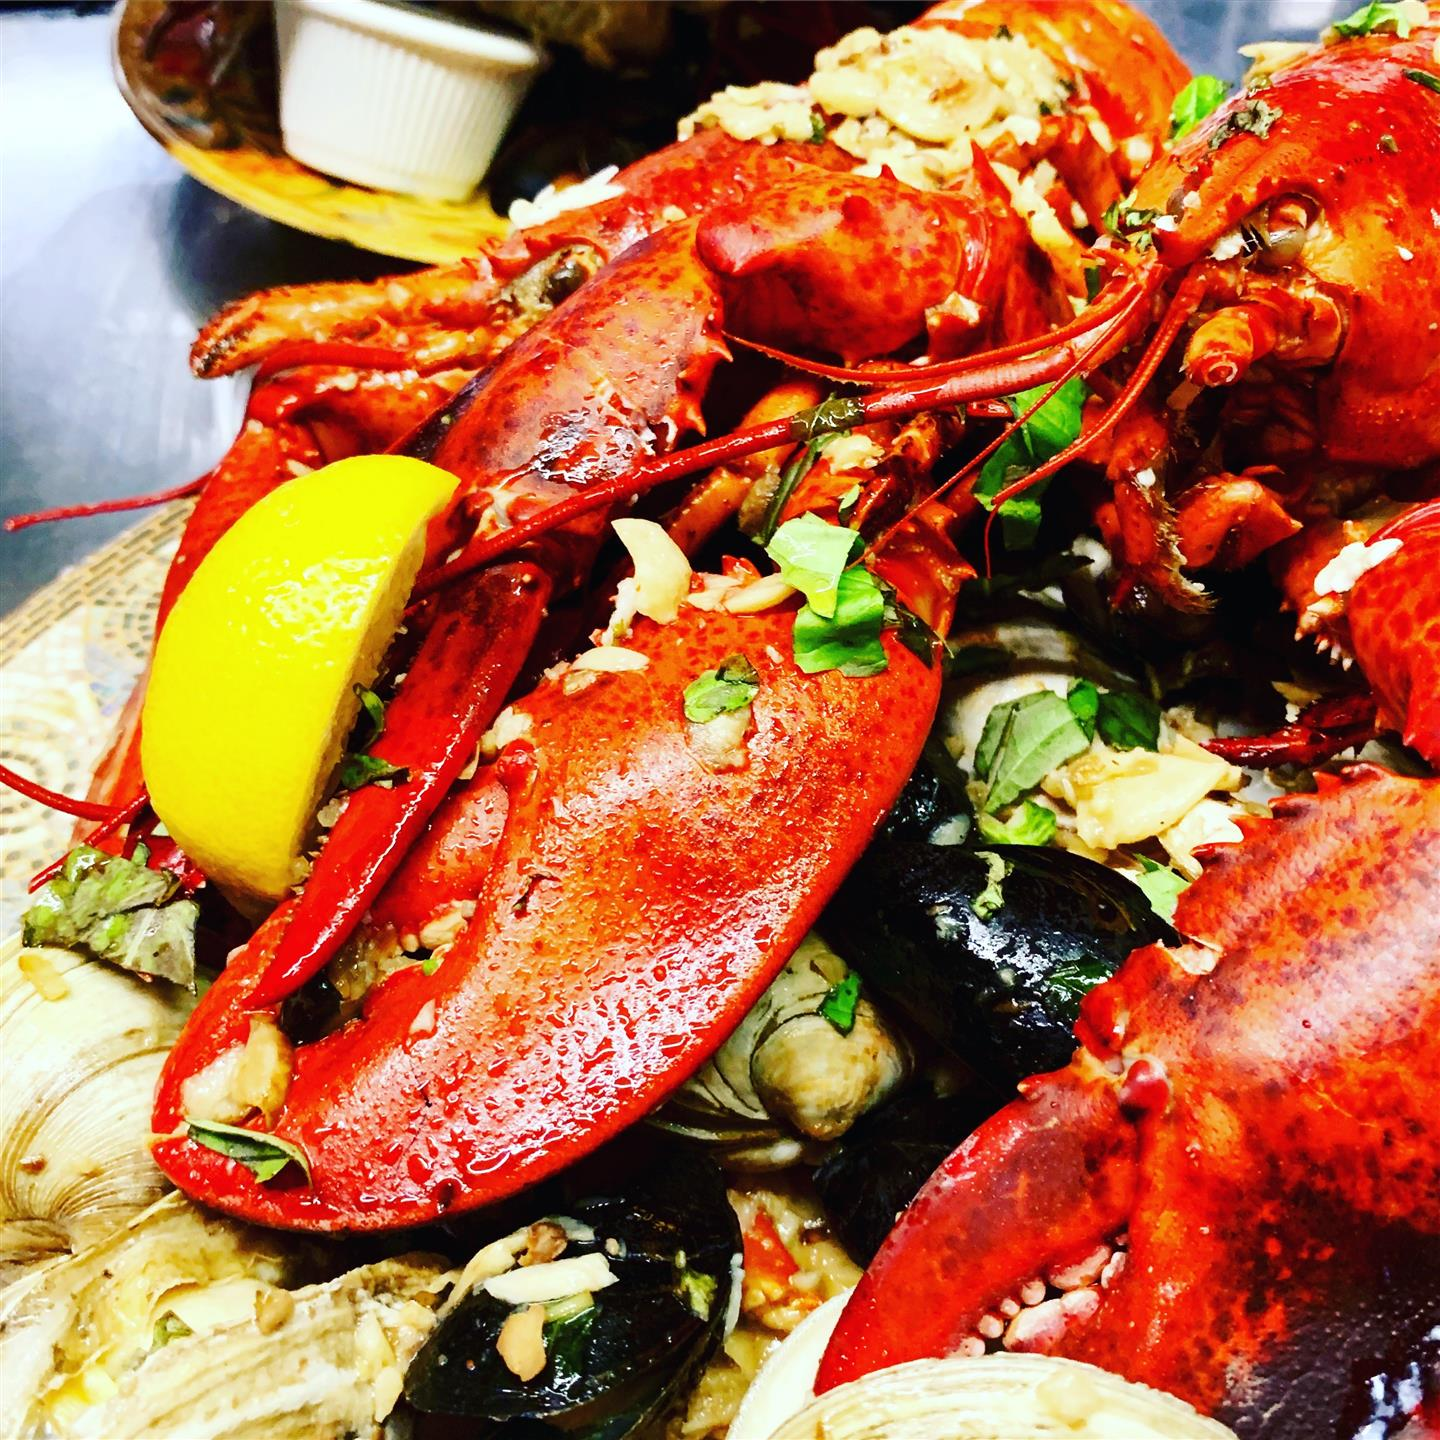 The Clam Bake.  Our 11/4 whole lobster, crab legs, steamers, mussels, clams and shrimp are steamed in our light butter and garlic sauce. Served with corn on the cob